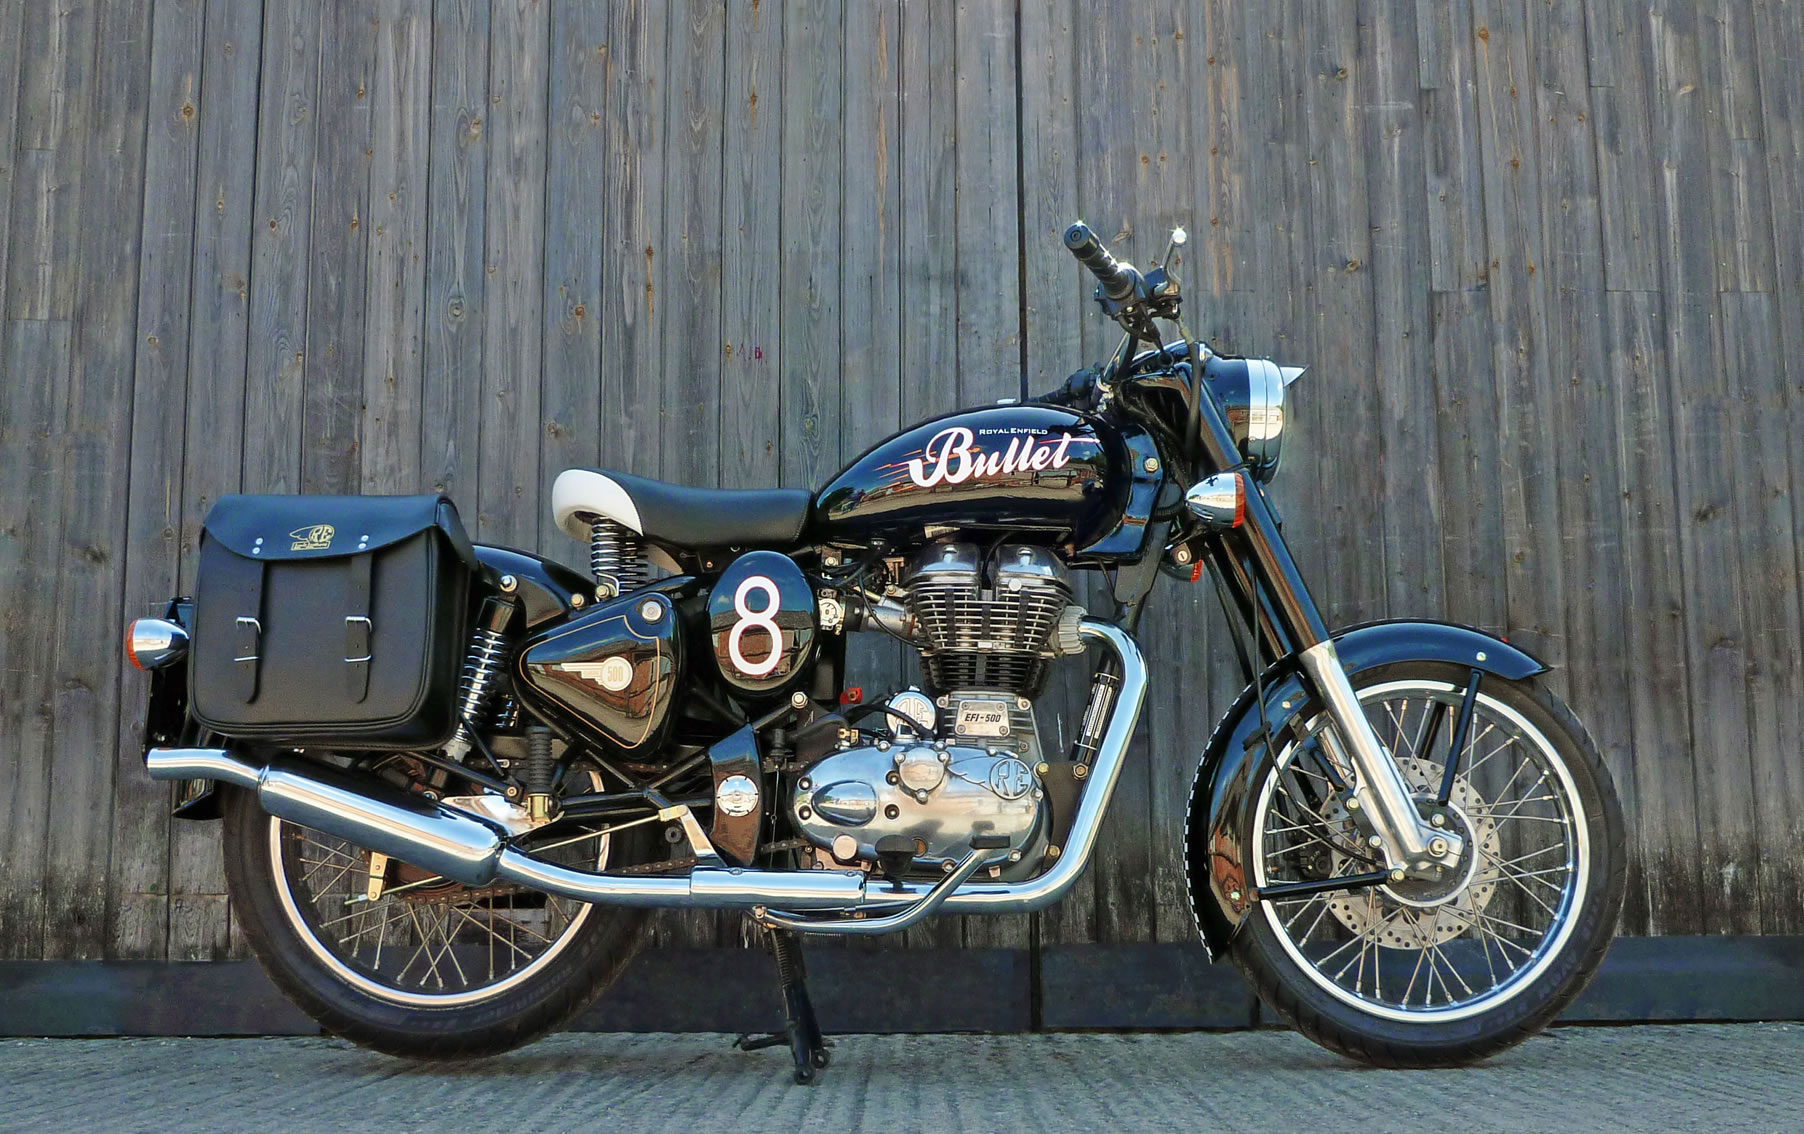 Royal Enfield Bullet 500 Classic 2011 images #123989